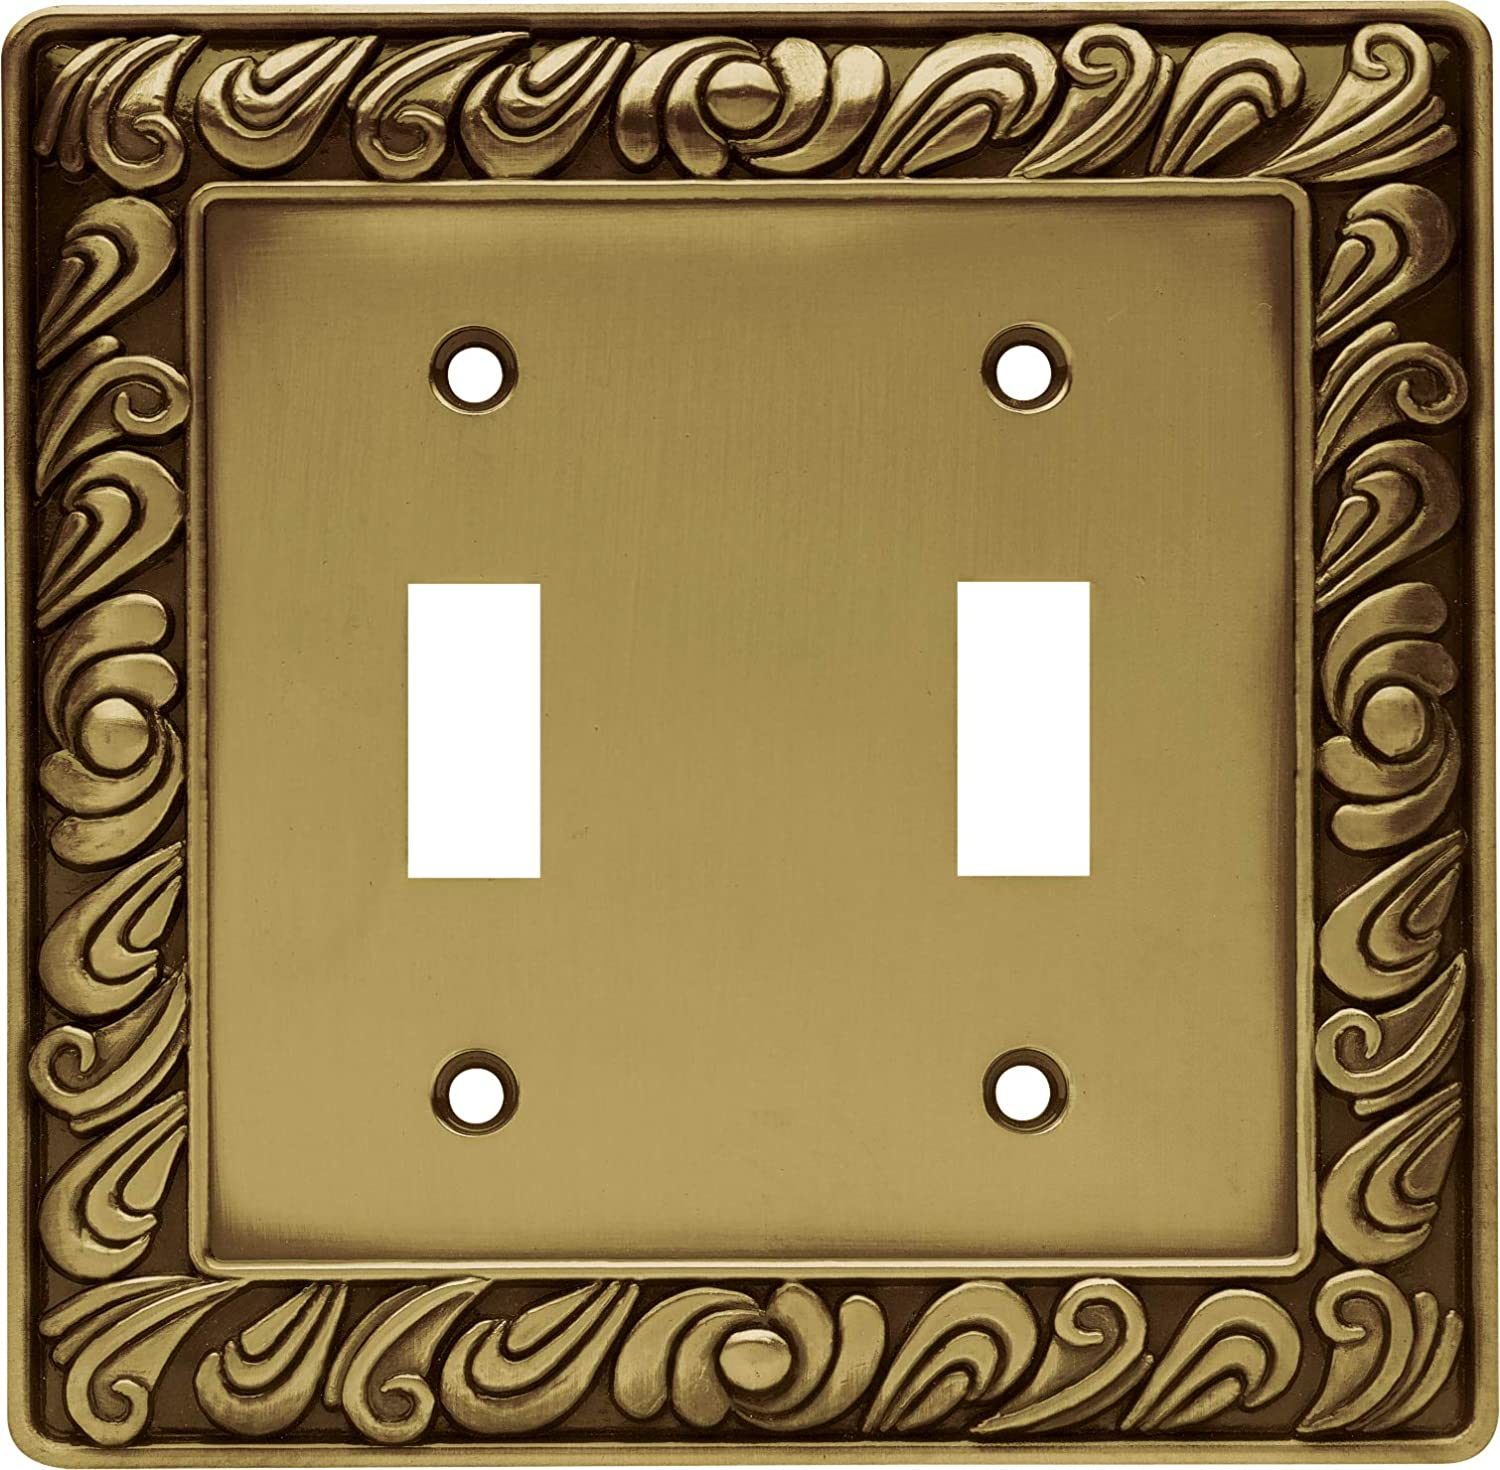 Franklin Brass 64040 Paisley Double Toggle Switch Wall Plate Switch Plate Cover Tumbled Antique Brass Amazon Com